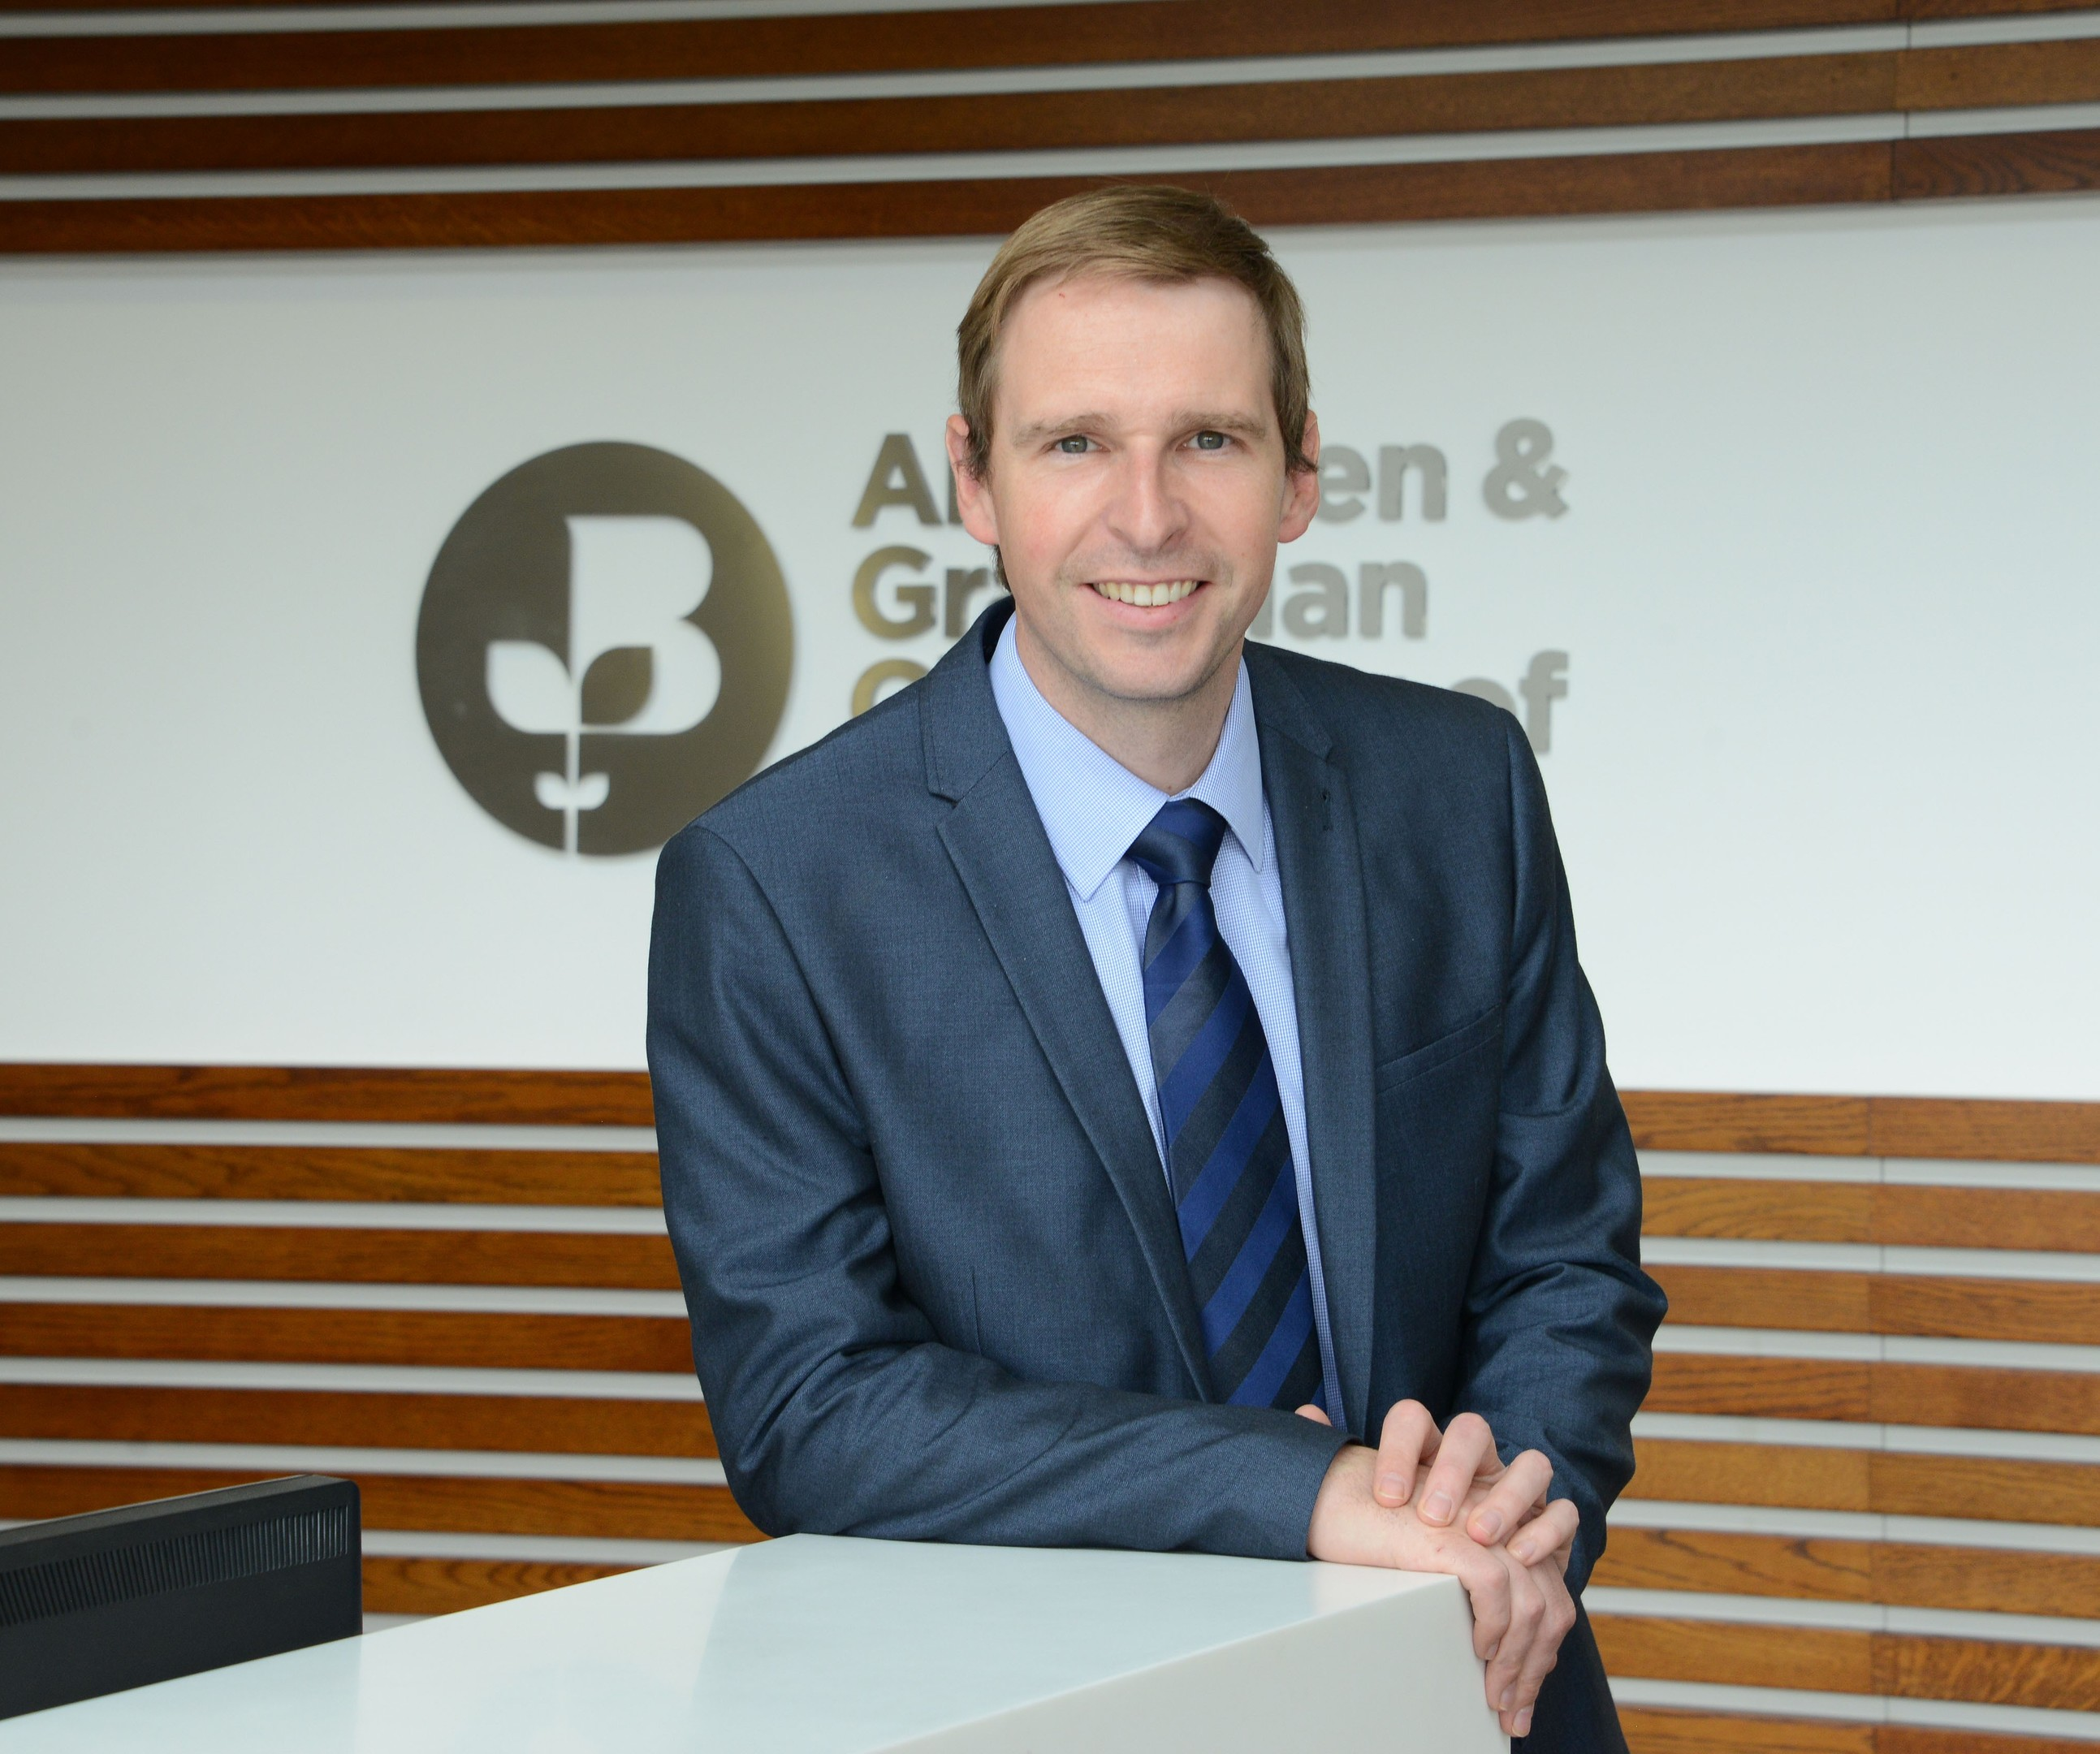 James Bream, research and policy director at the Aberdeen and Grampian Chamber of Commerce